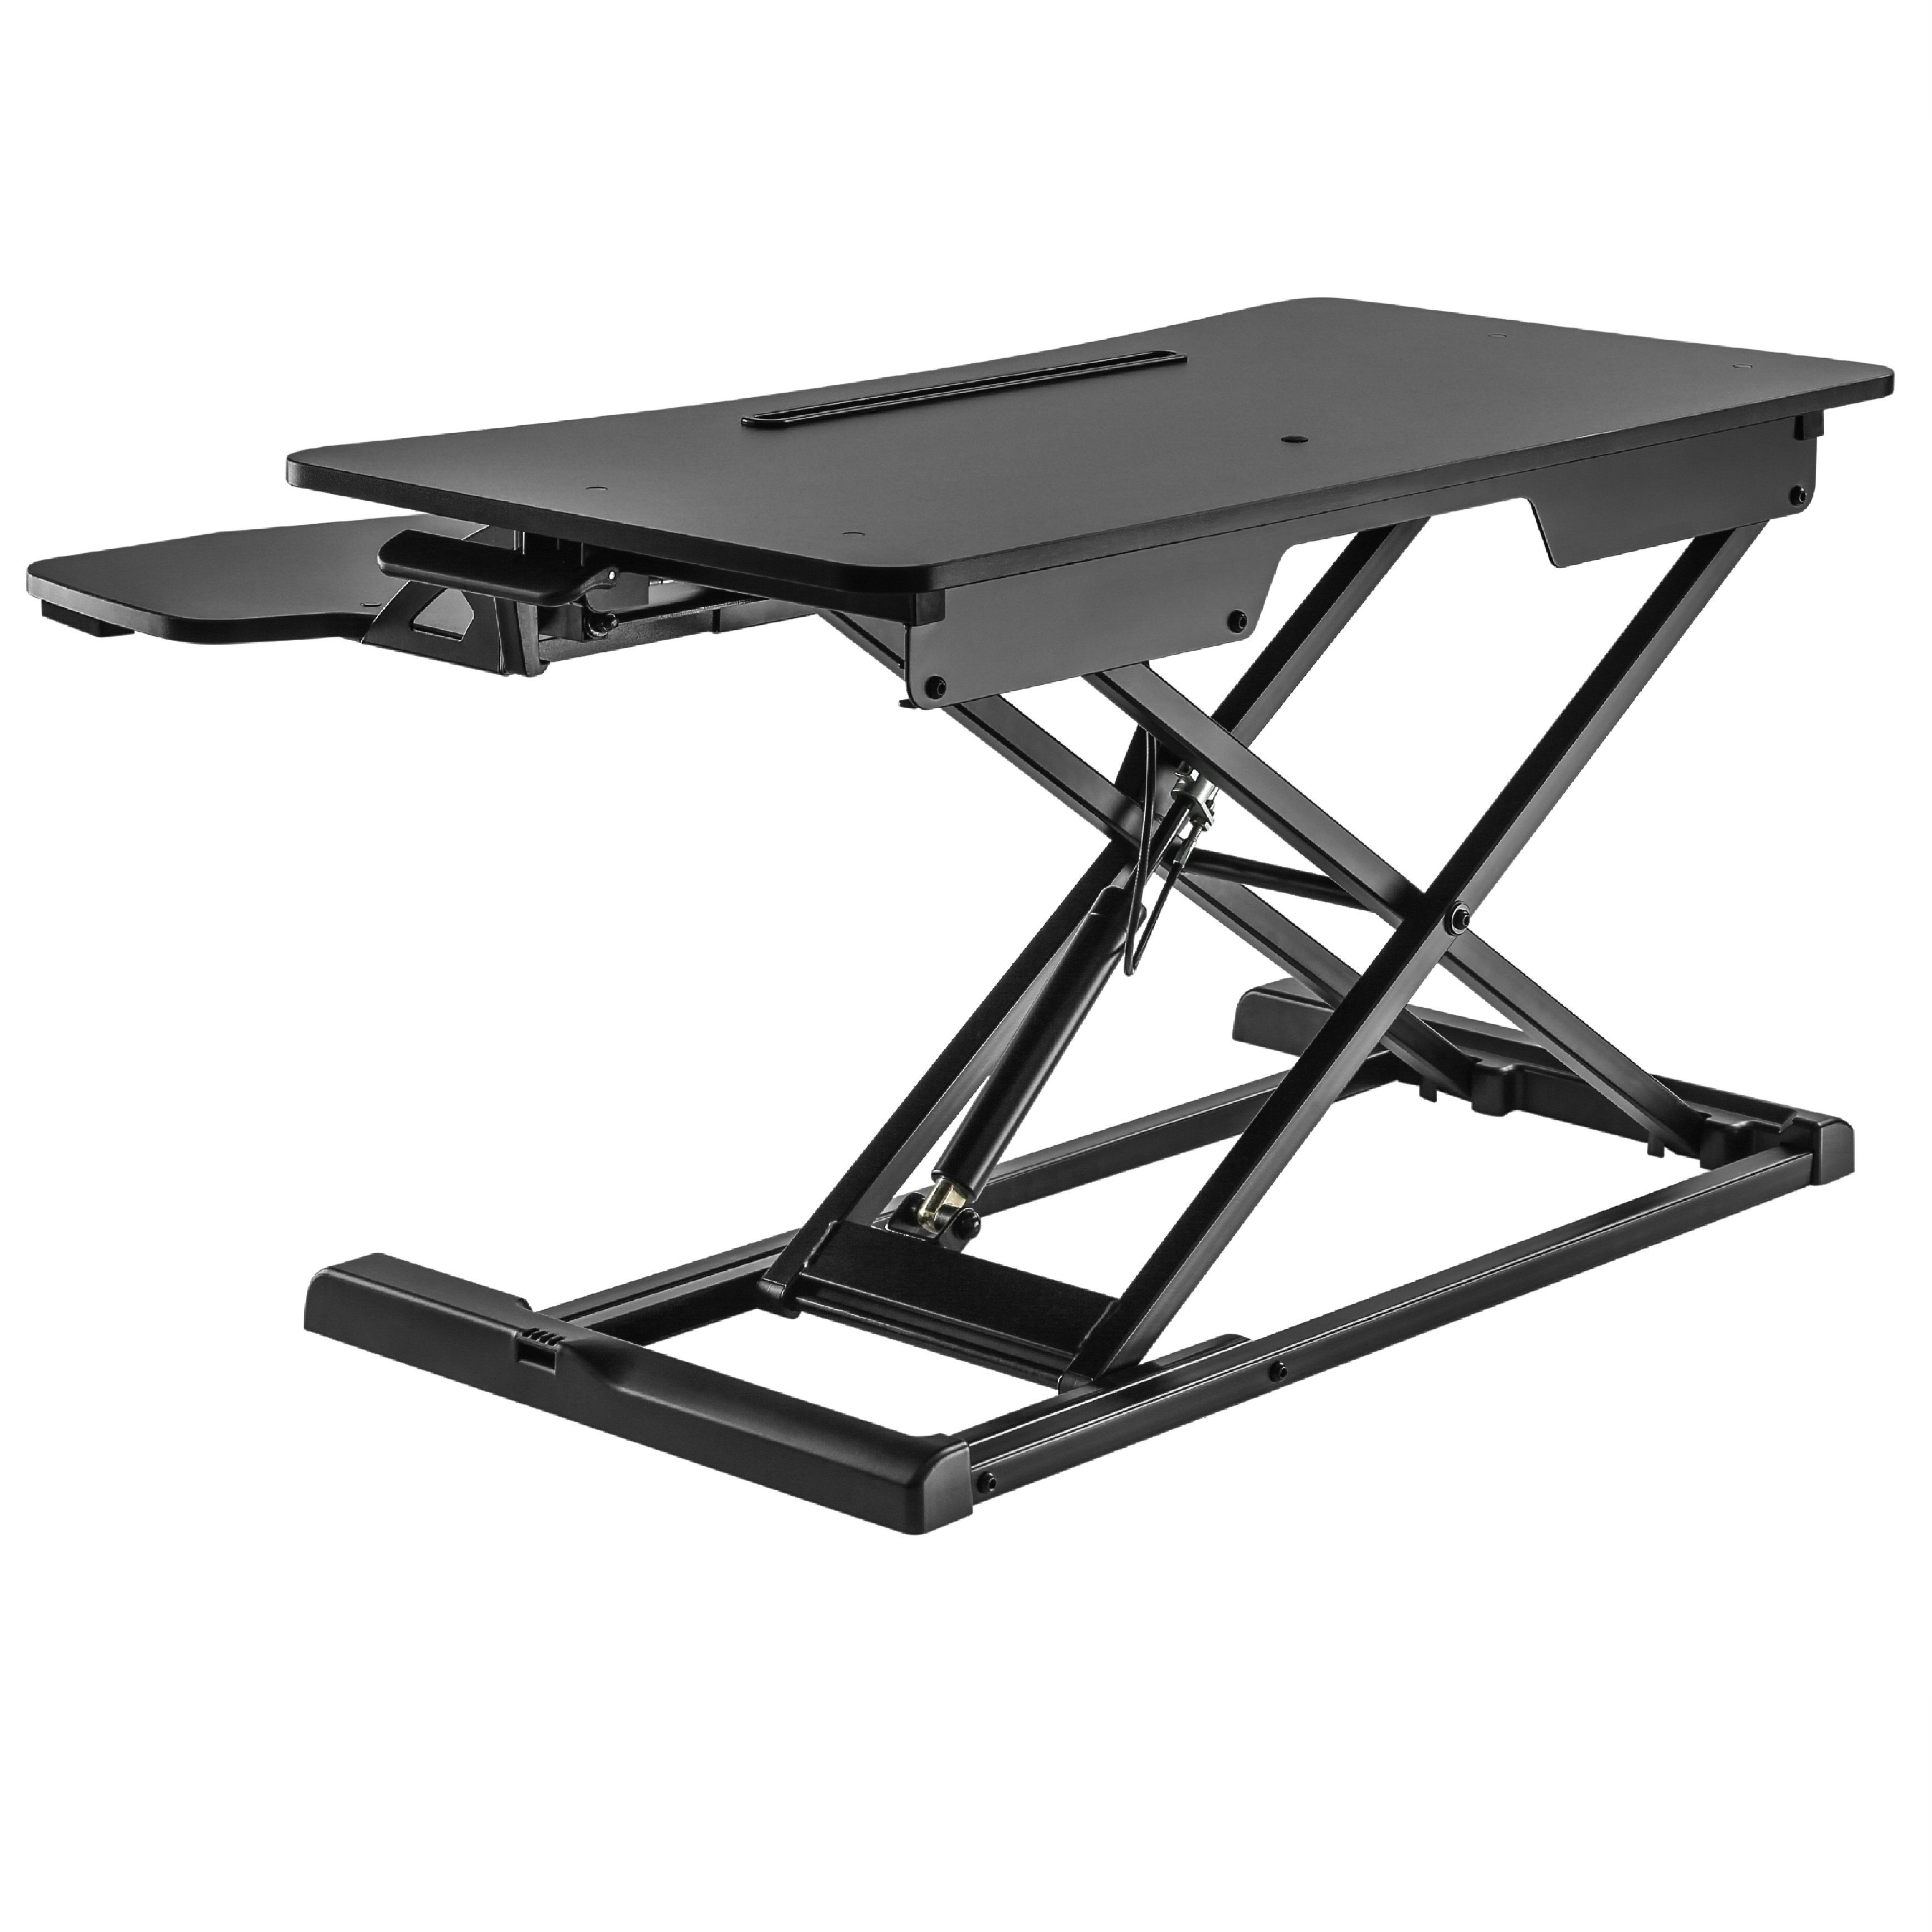 "309287 - Sit - Stand Height Adjustable Desk - 31.5"" X 24"""